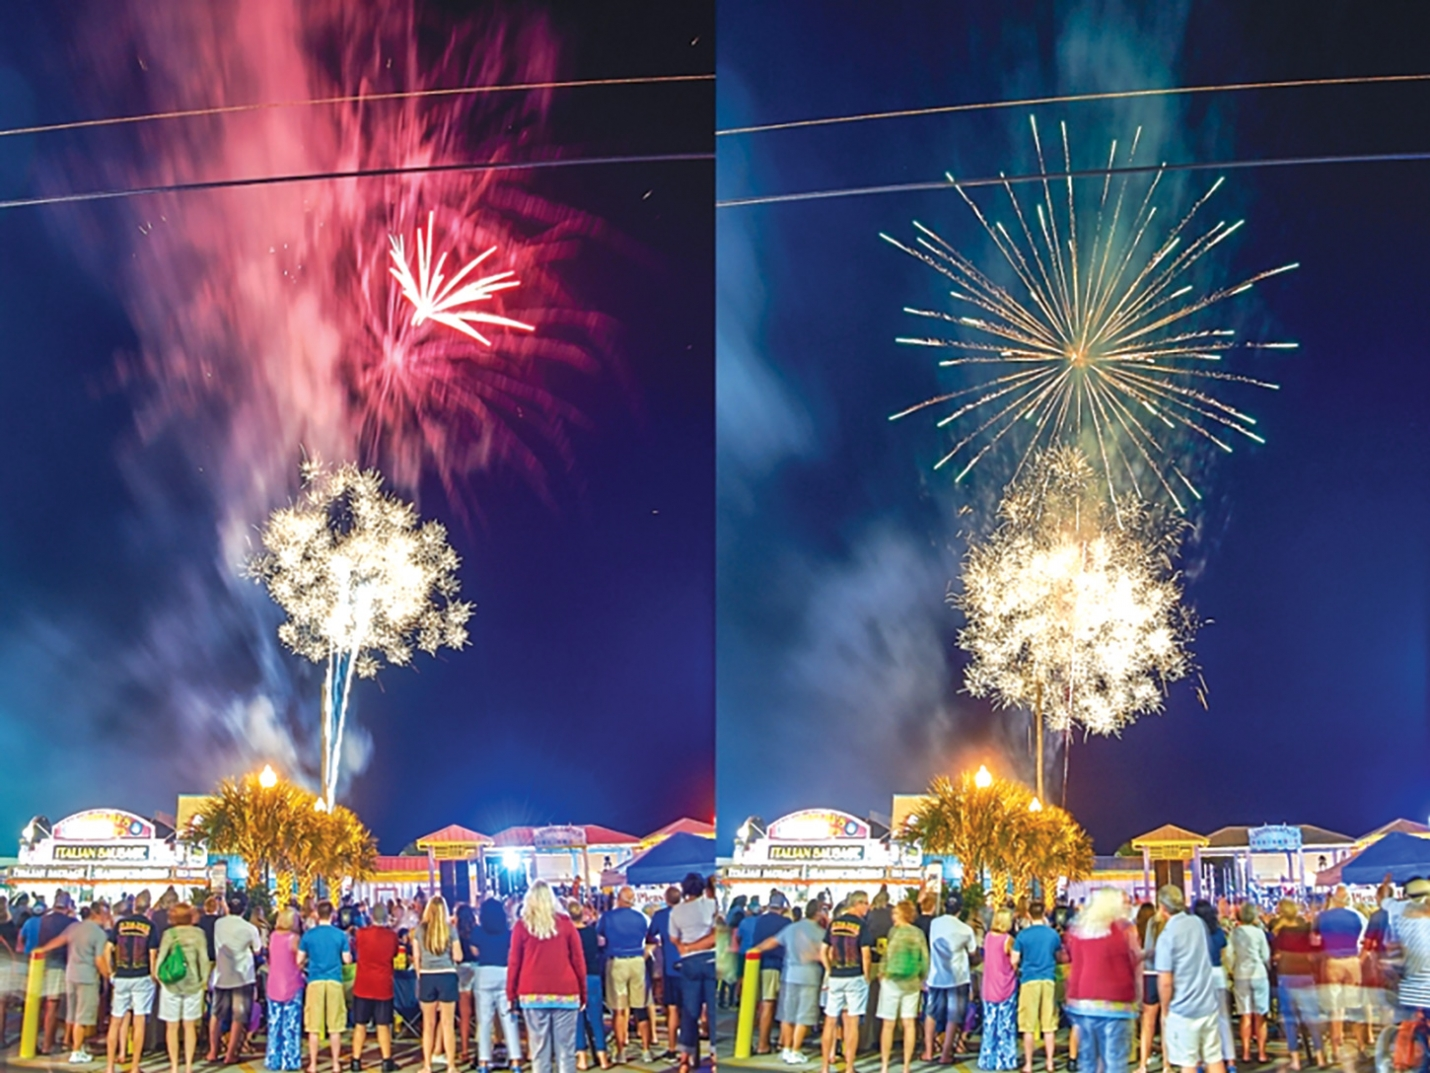 COVID-19 has been cause for the cancelation of a number of local events. The tradtional July 3rd Independence Day Fireworks show in Carolina Beach has also been canceled.